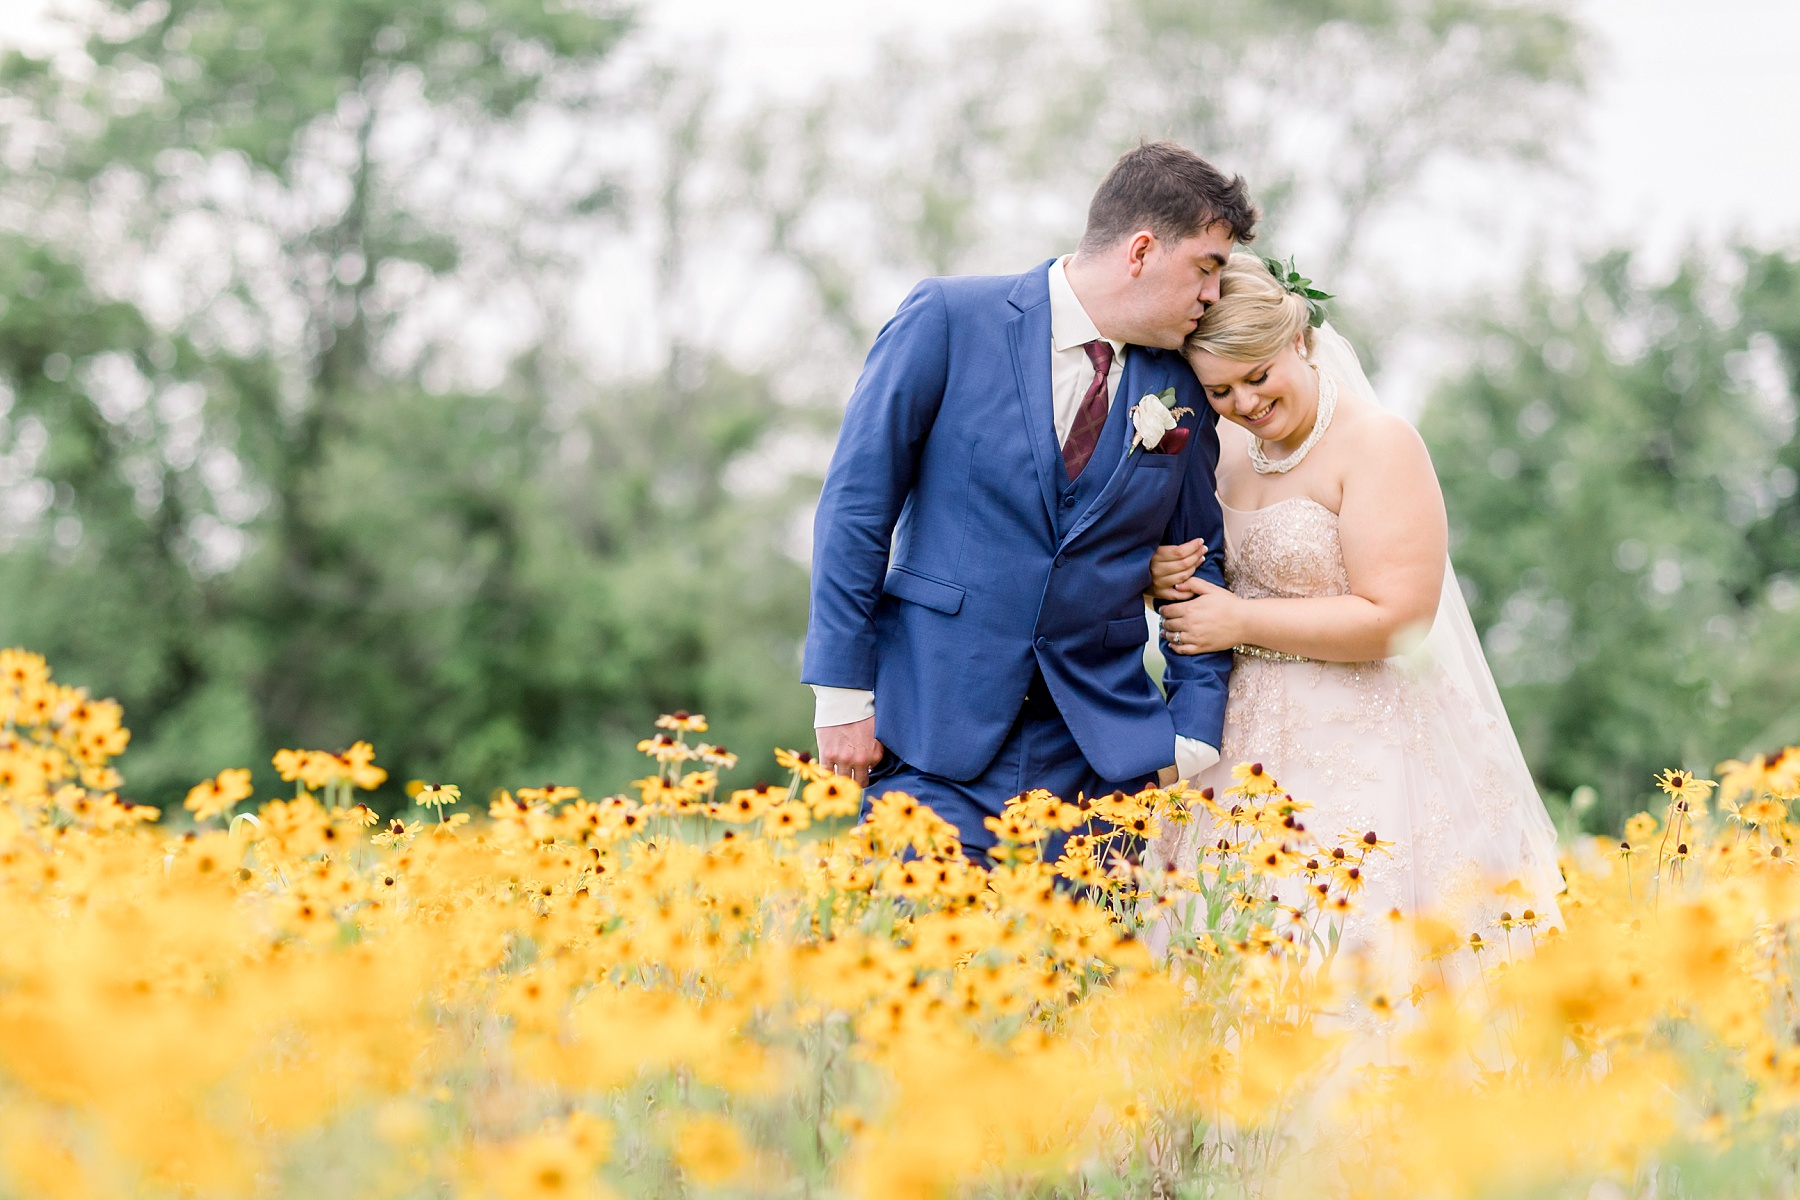 adventurous-authentic-wedding-engagement-photography-kansas-city-elizabeth-ladean-photo_5455.jpg